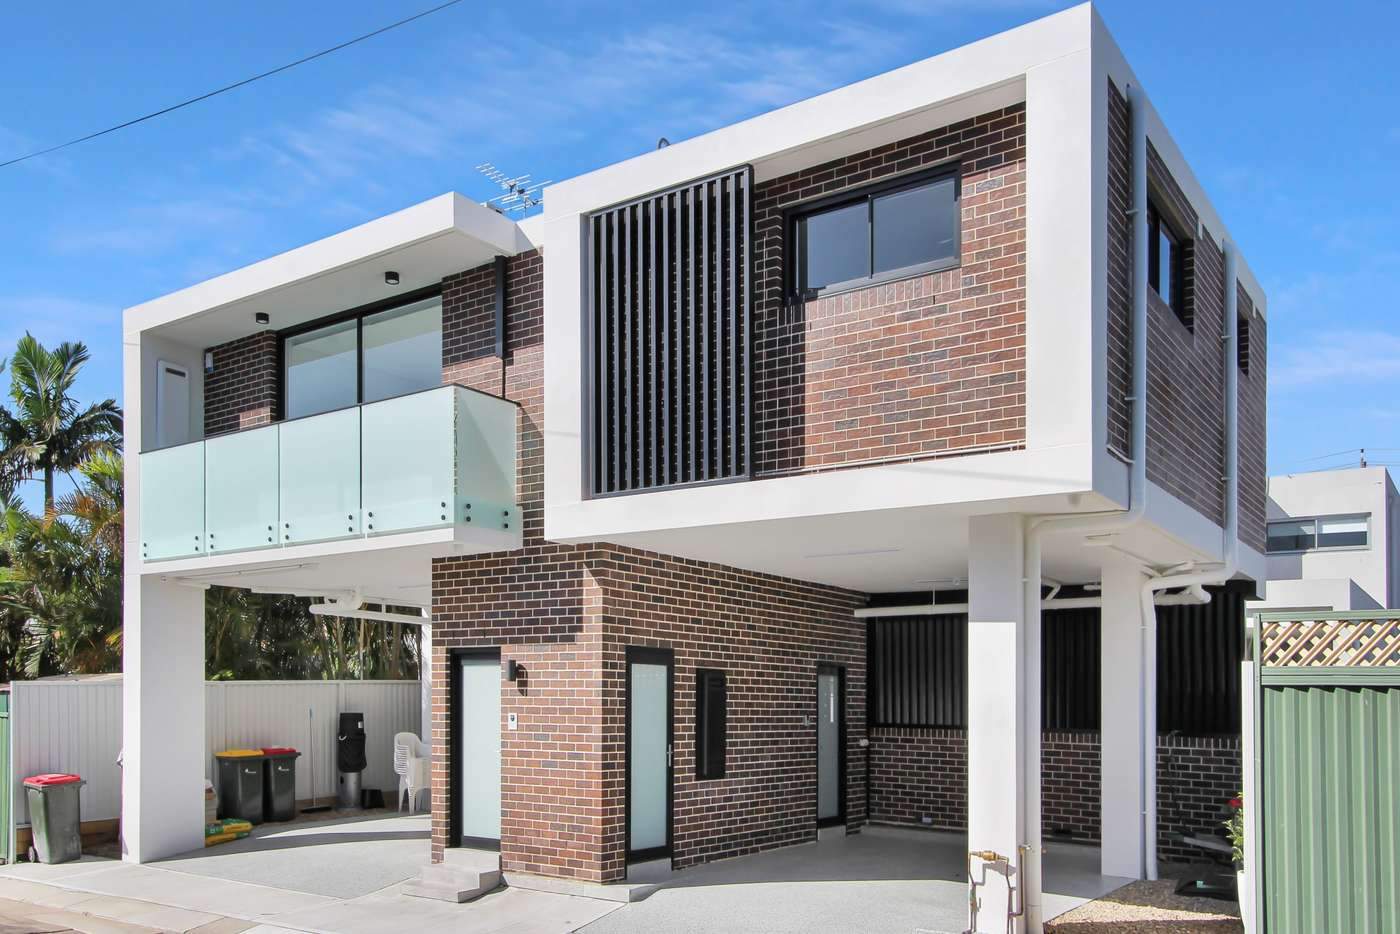 Main view of Homely apartment listing, 38 Russell Lane, Sans Souci NSW 2219